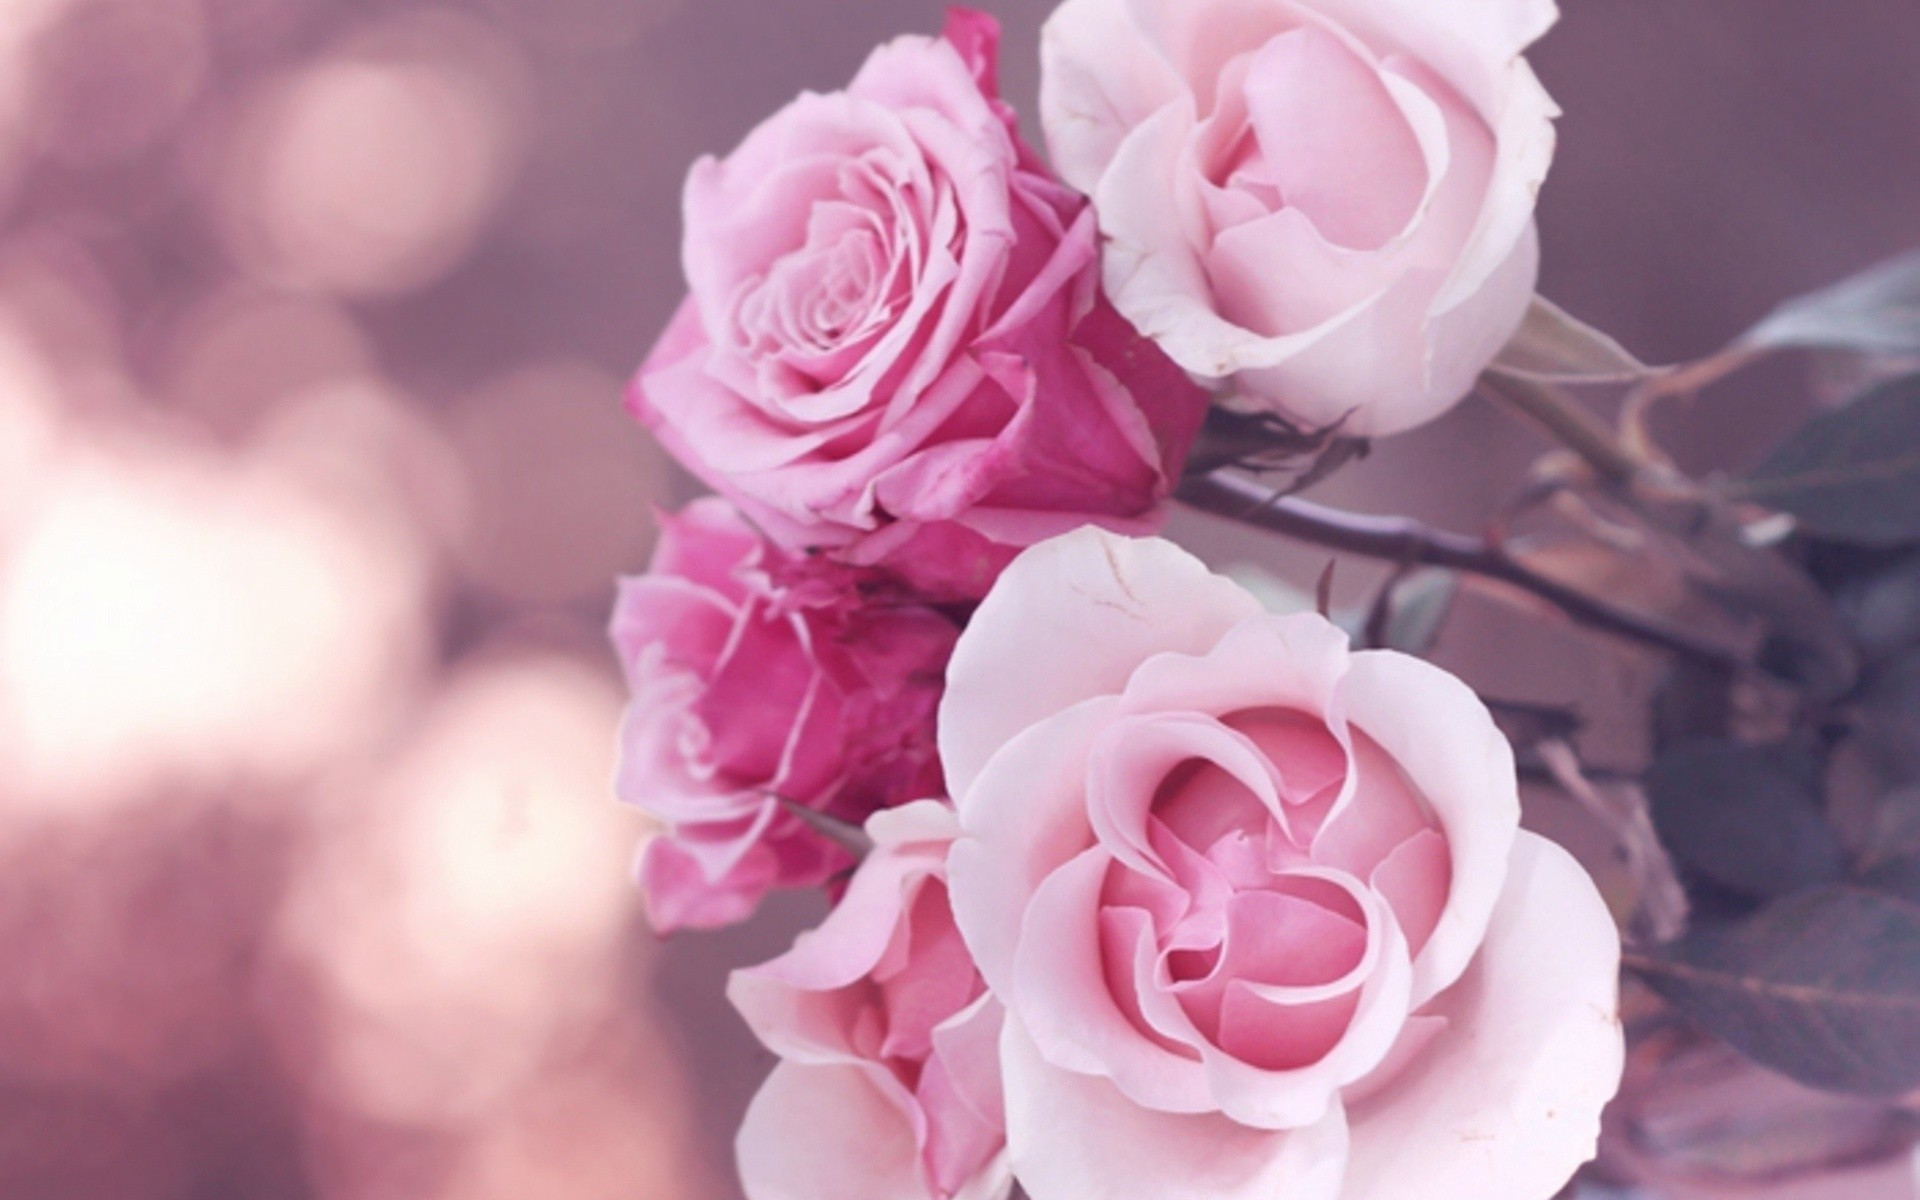 Flowers Roses Pink Rose Wallpaper Allwallpaper In 6809 Pc En